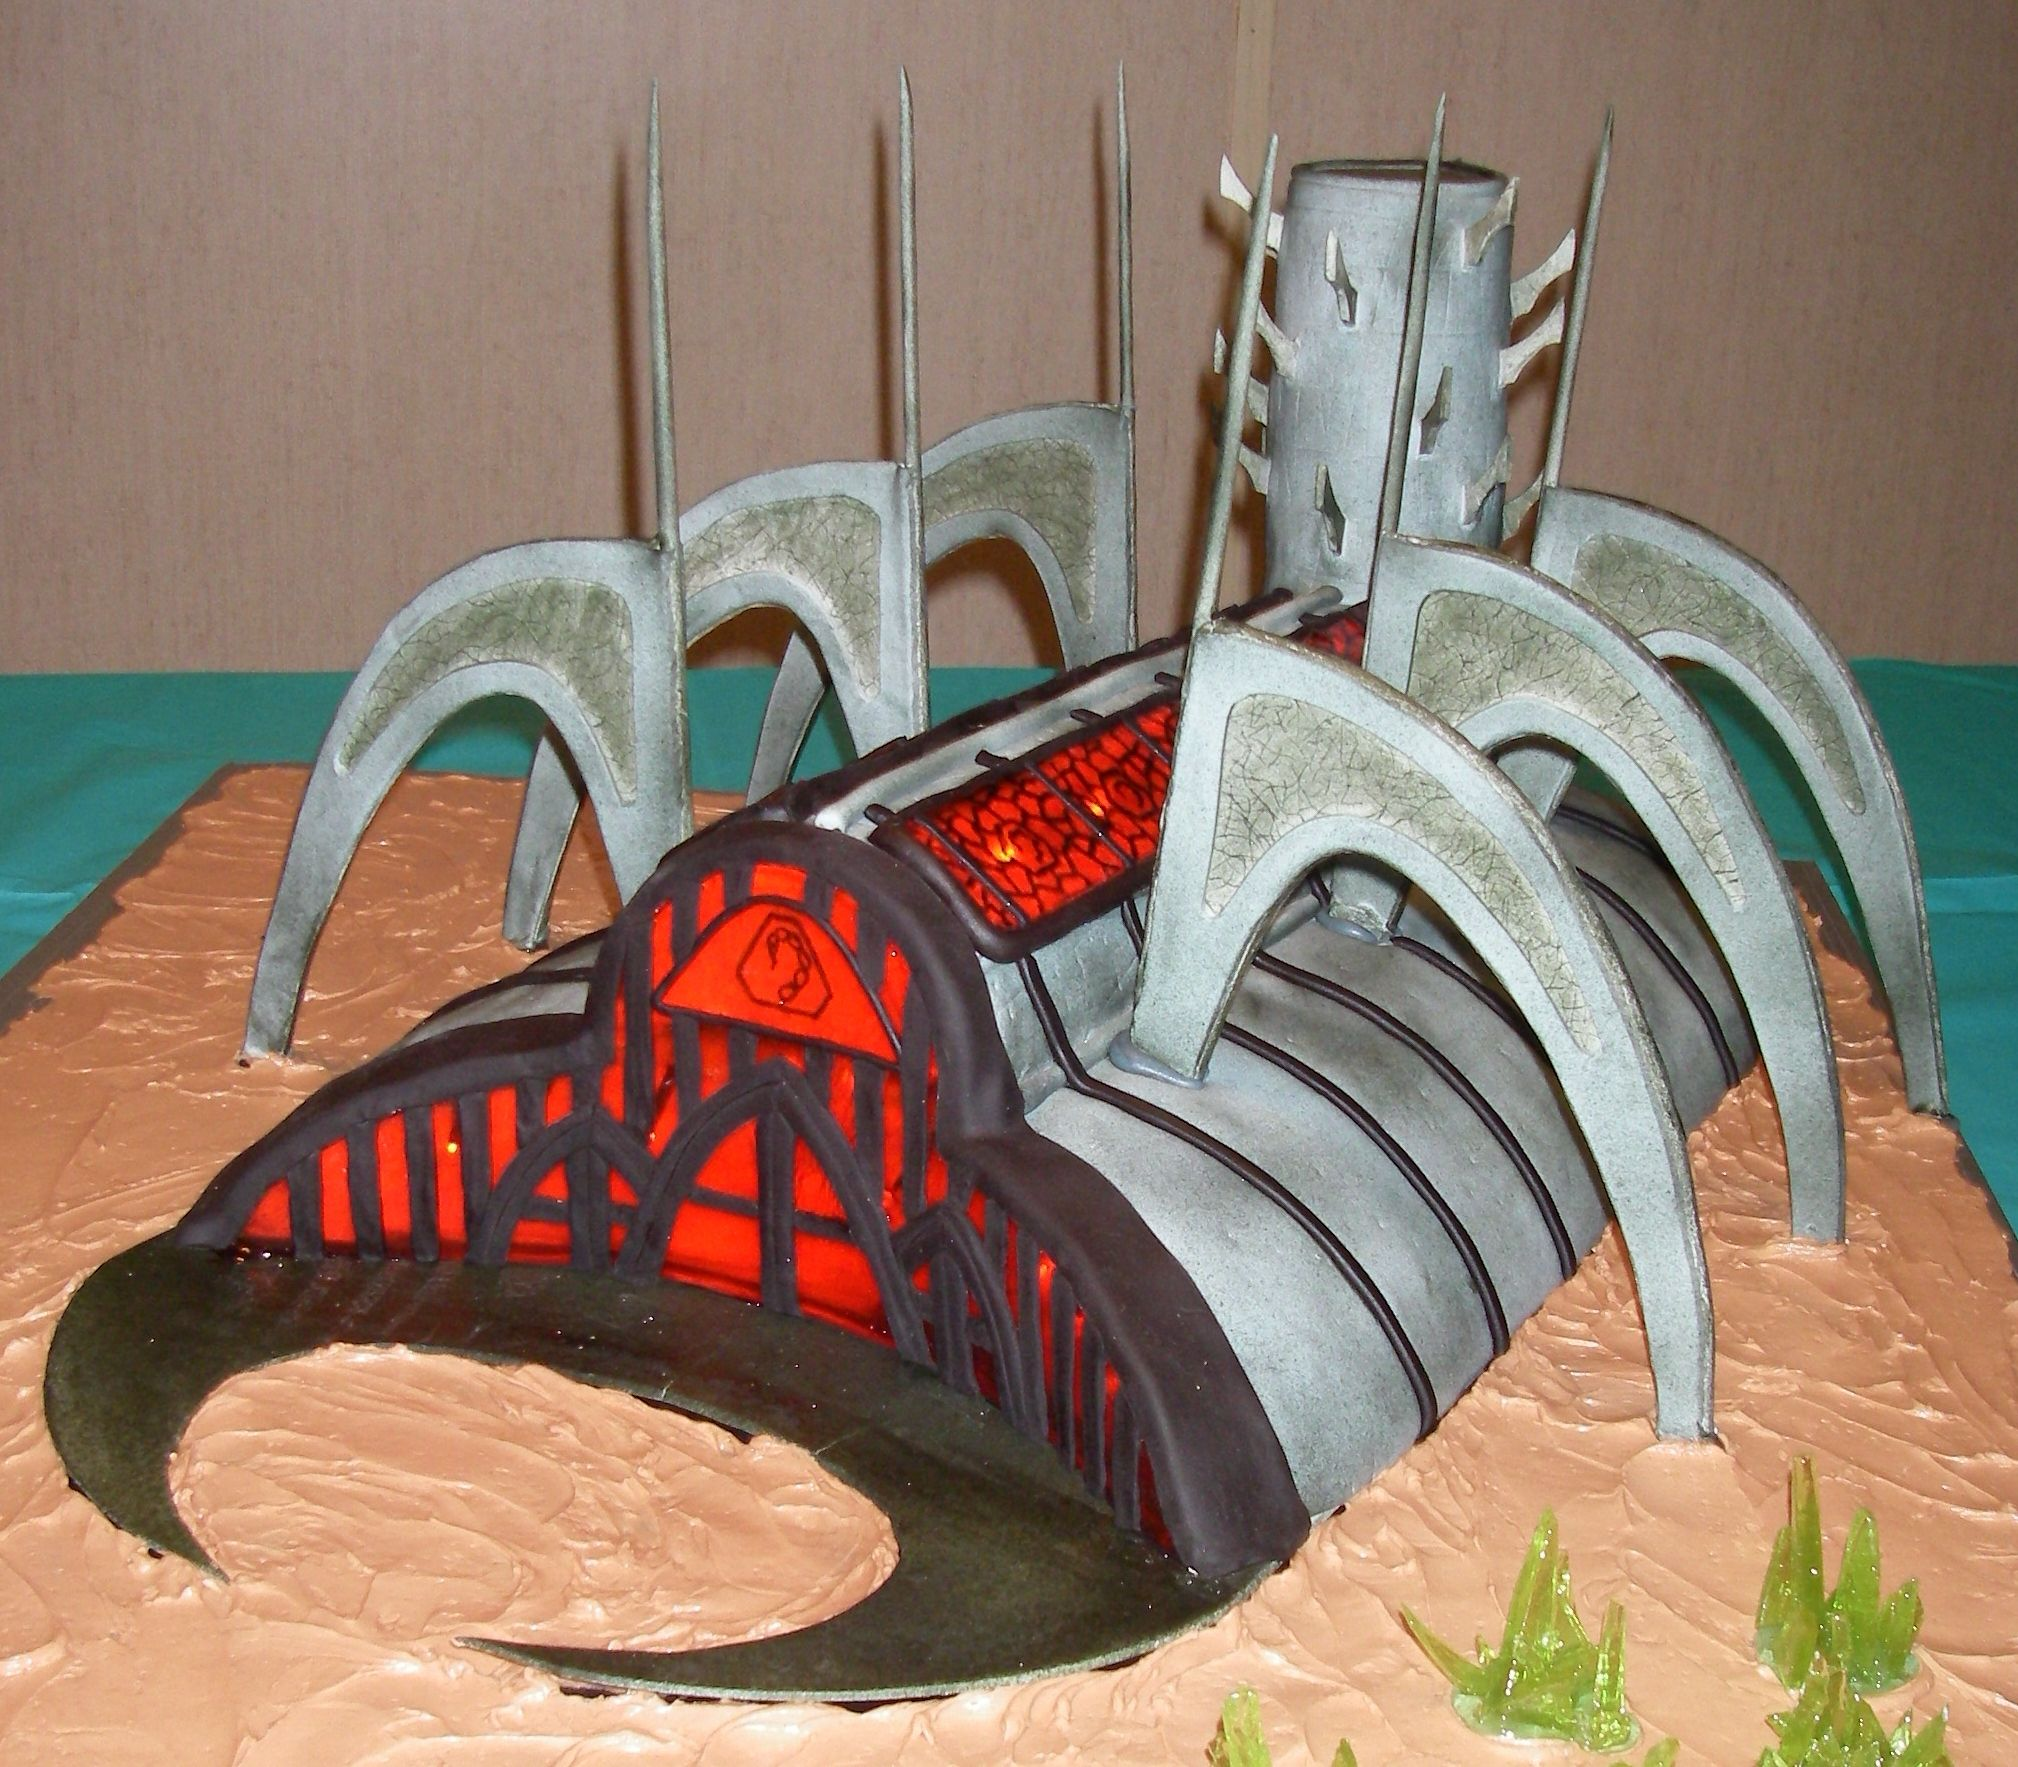 Command And Conquer Temple Of Nod Command And Conquer Building Cake Special Occassion